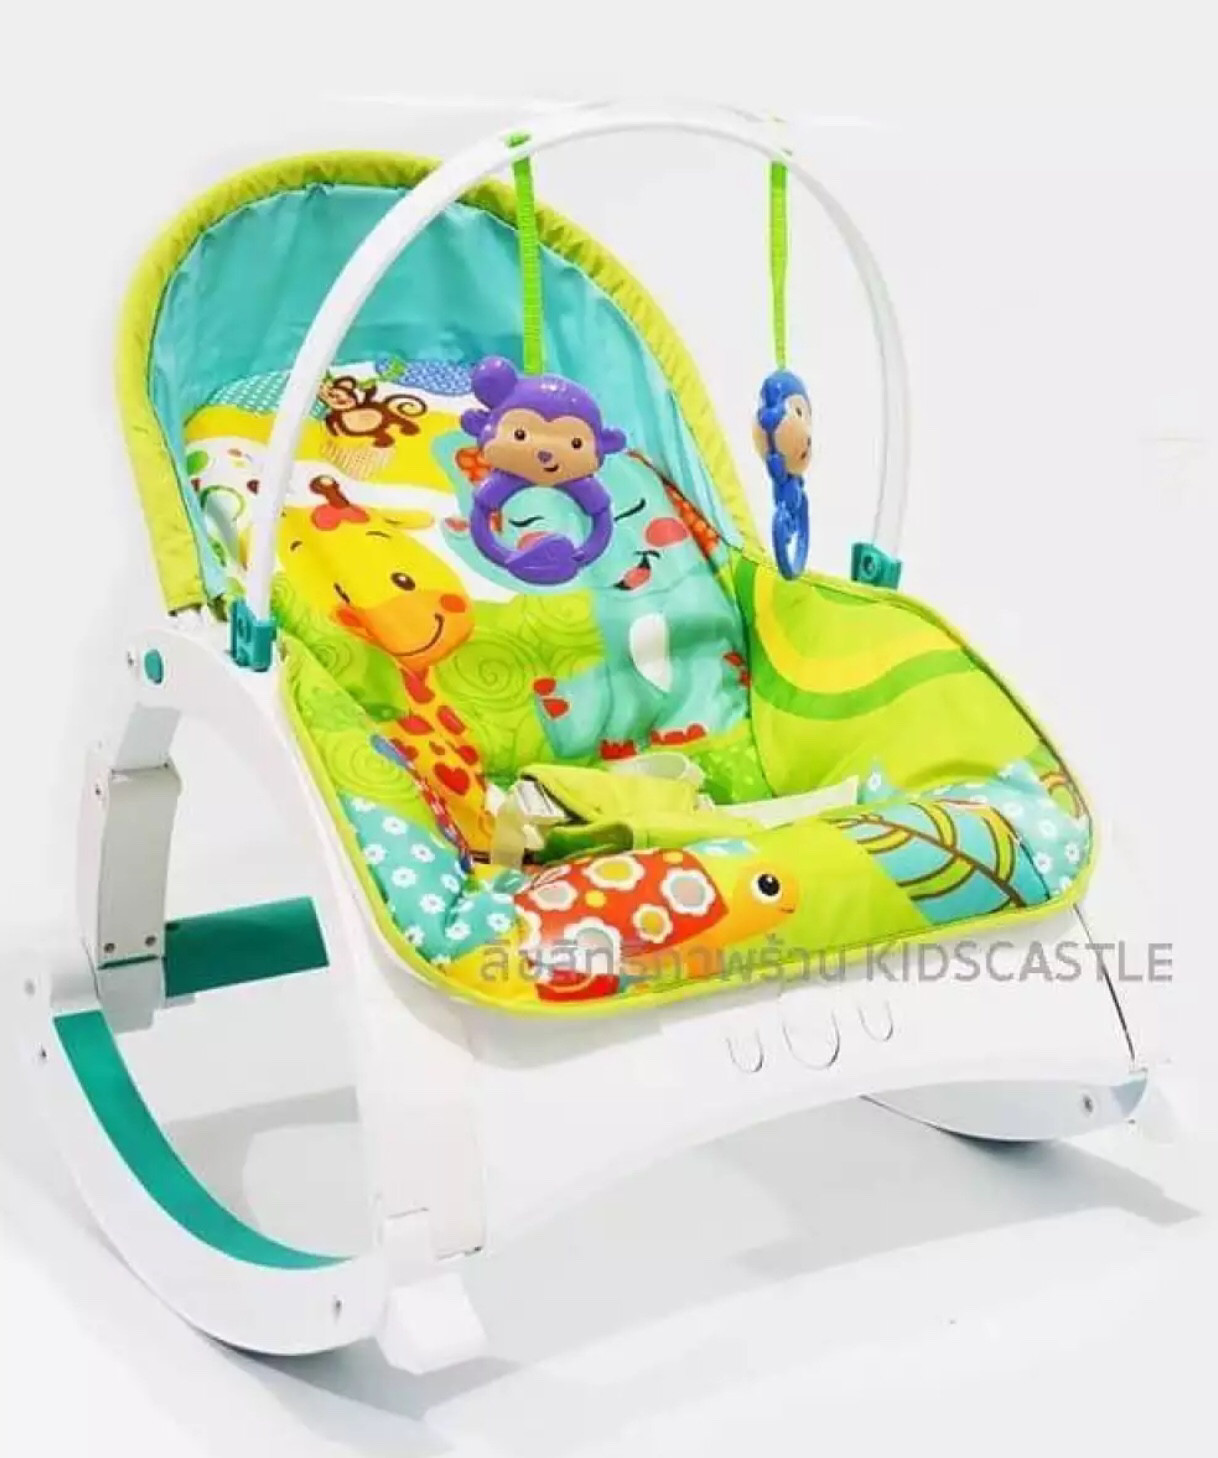 Toddler Rocker Bouncy Seat with Vibration & Music